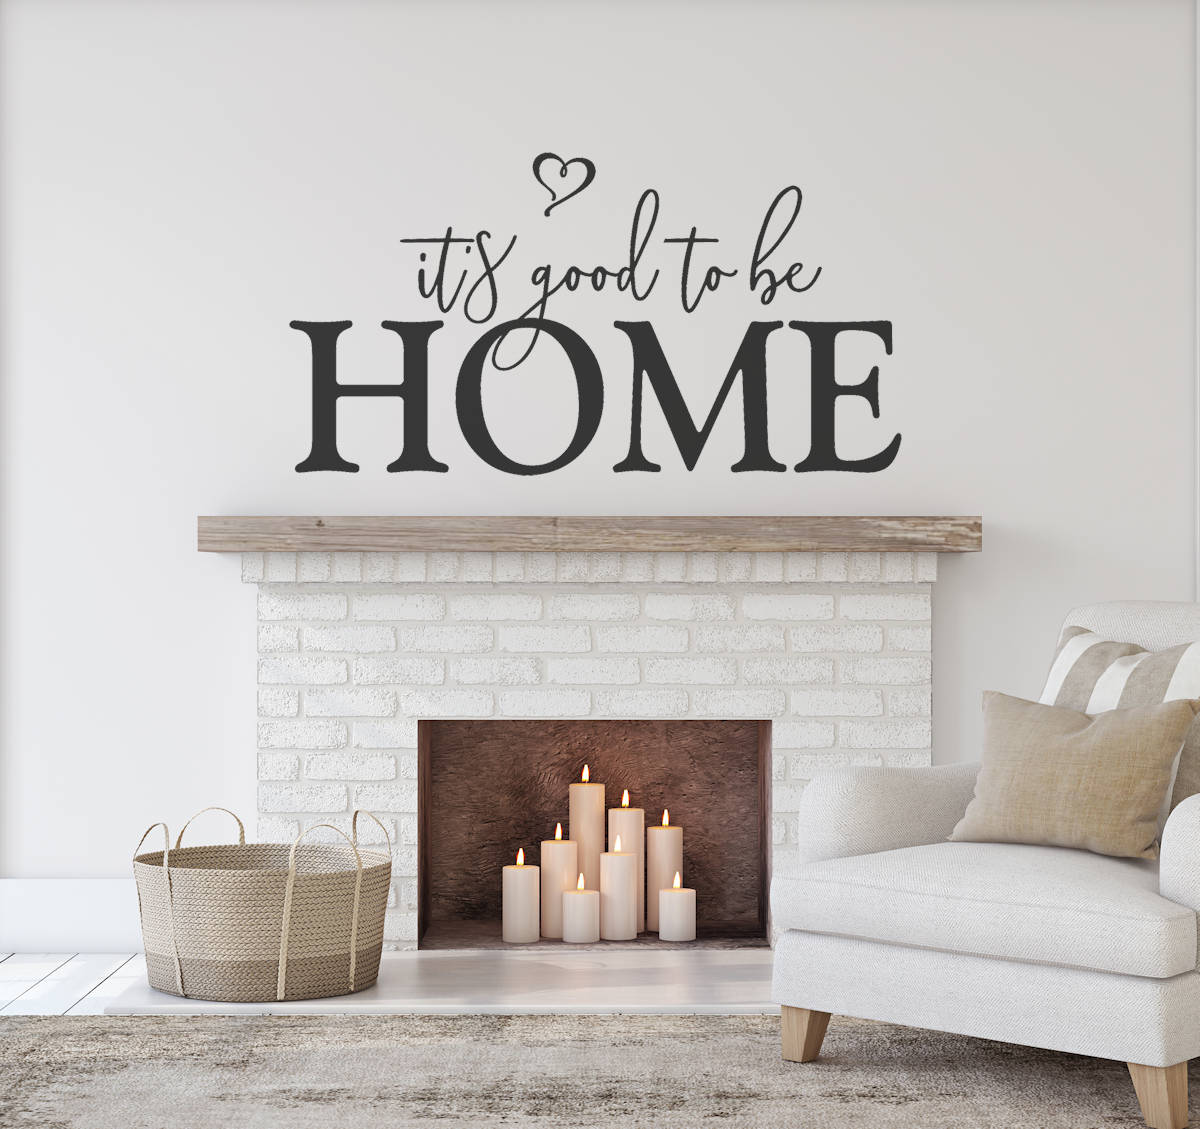 Home Wall Decal Custom Wall Decal Its Good To Be Etsy